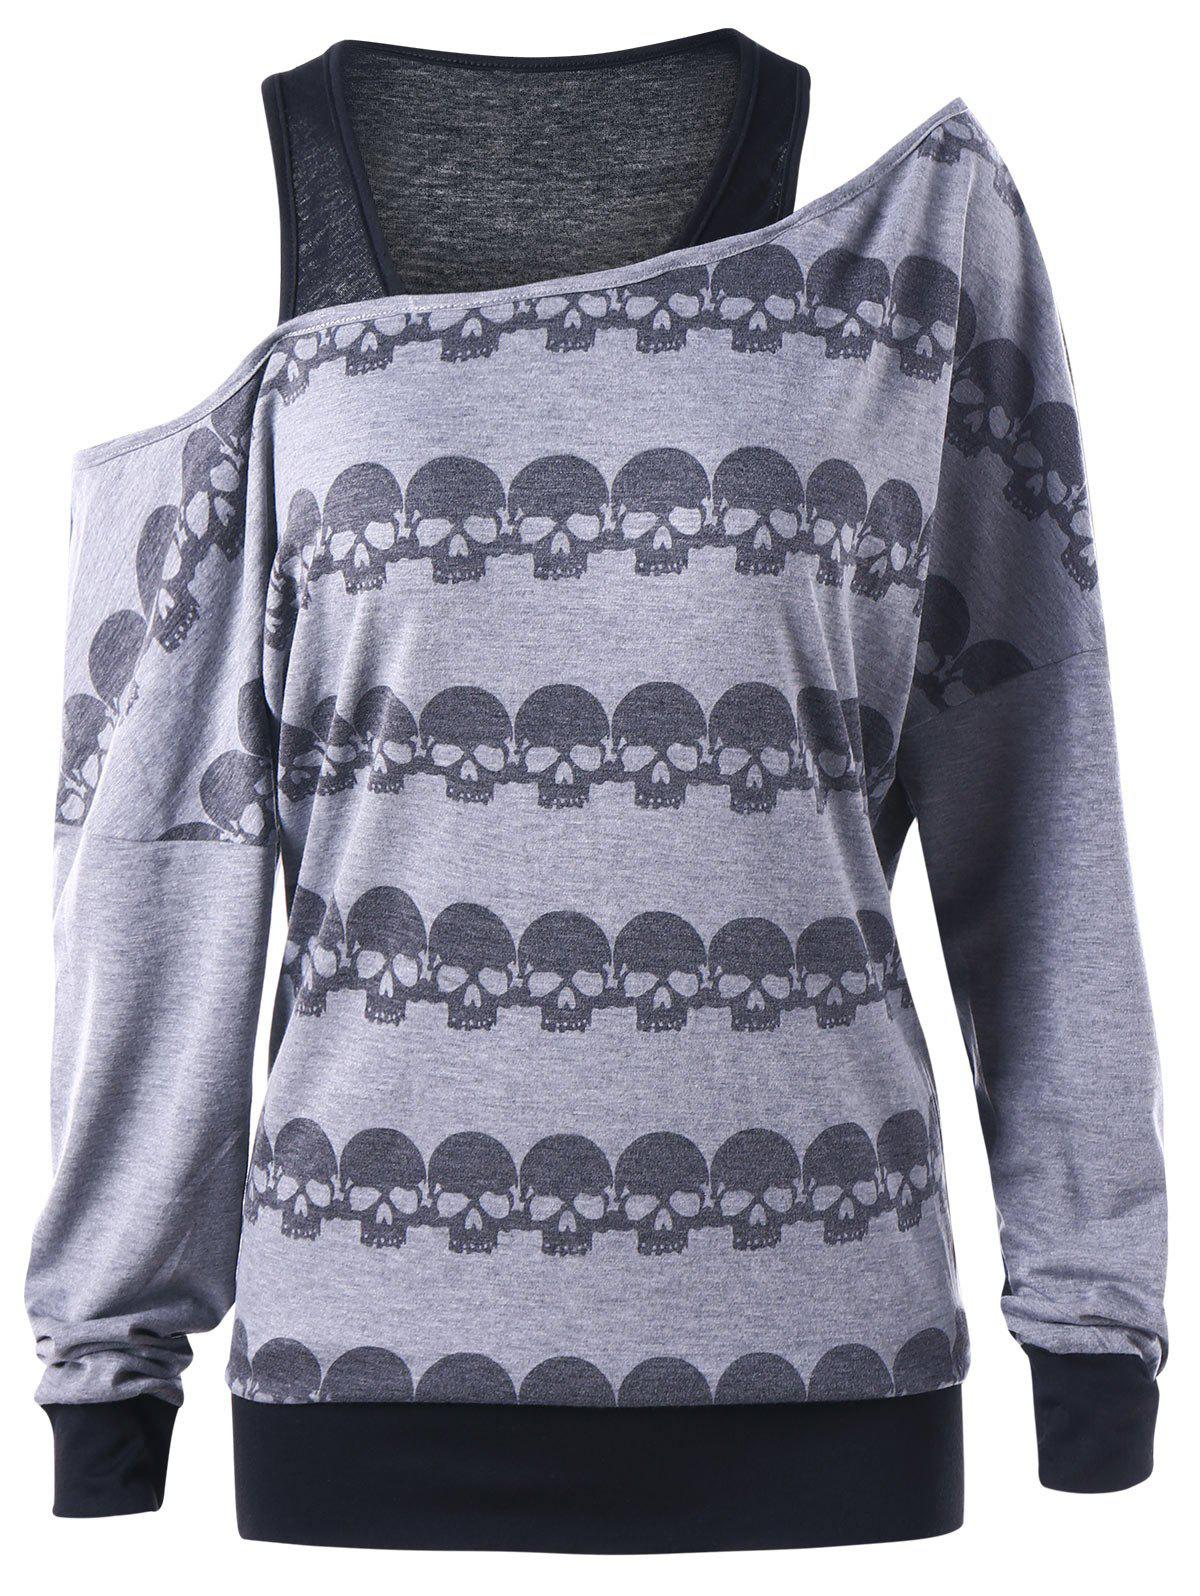 Halloween Skew Neck Skulls SweatshirtWOMEN<br><br>Size: M; Color: BLACK AND GREY; Material: Polyester,Spandex; Shirt Length: Long; Sleeve Length: Full; Style: Casual; Pattern Style: Skulls; Season: Fall,Spring; Weight: 0.3000kg; Package Contents: 1 x Sweatshirt;